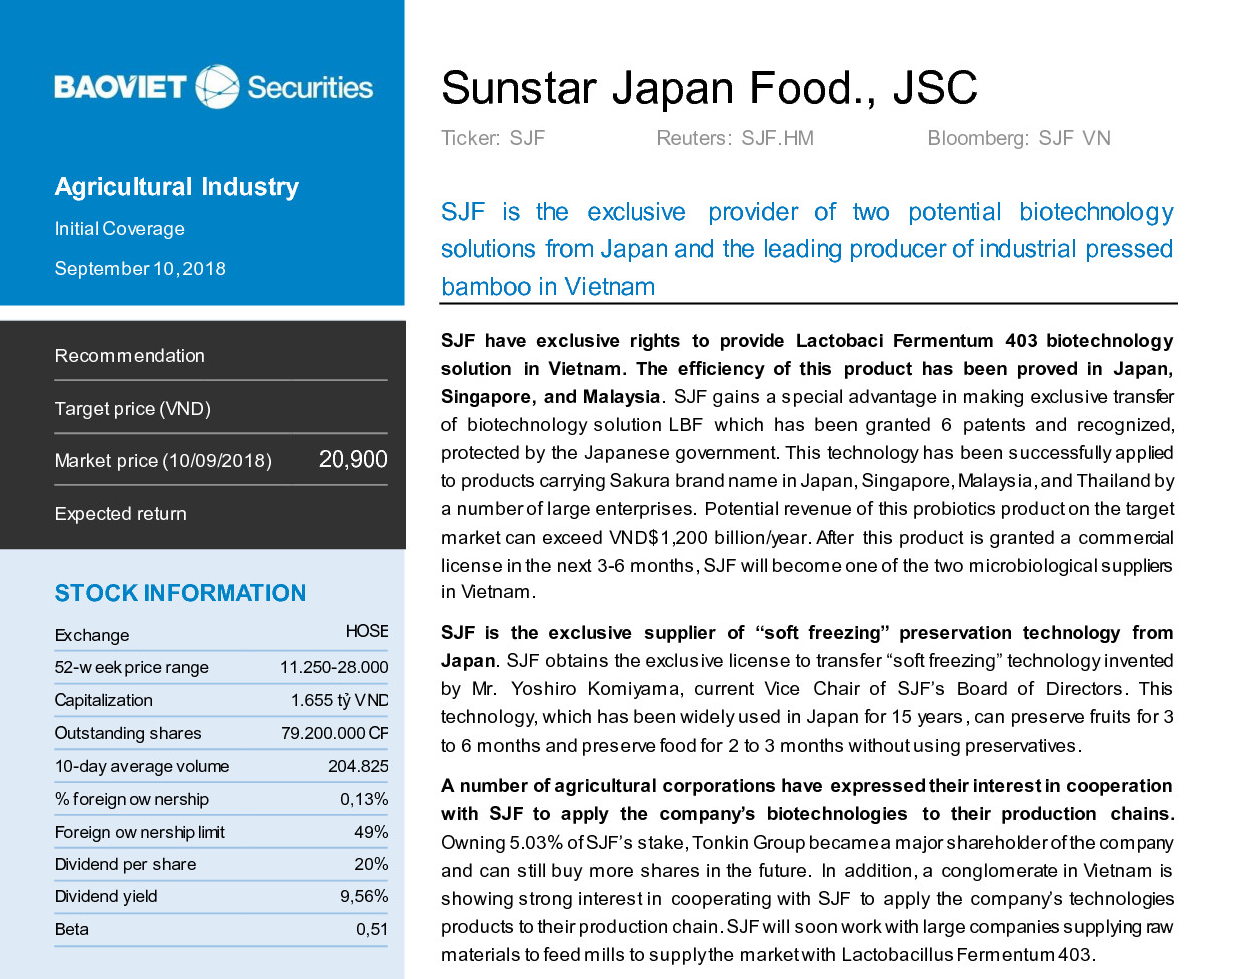 Business analysis report of SJF by Bao Viet Sercurities Joint Stock Company